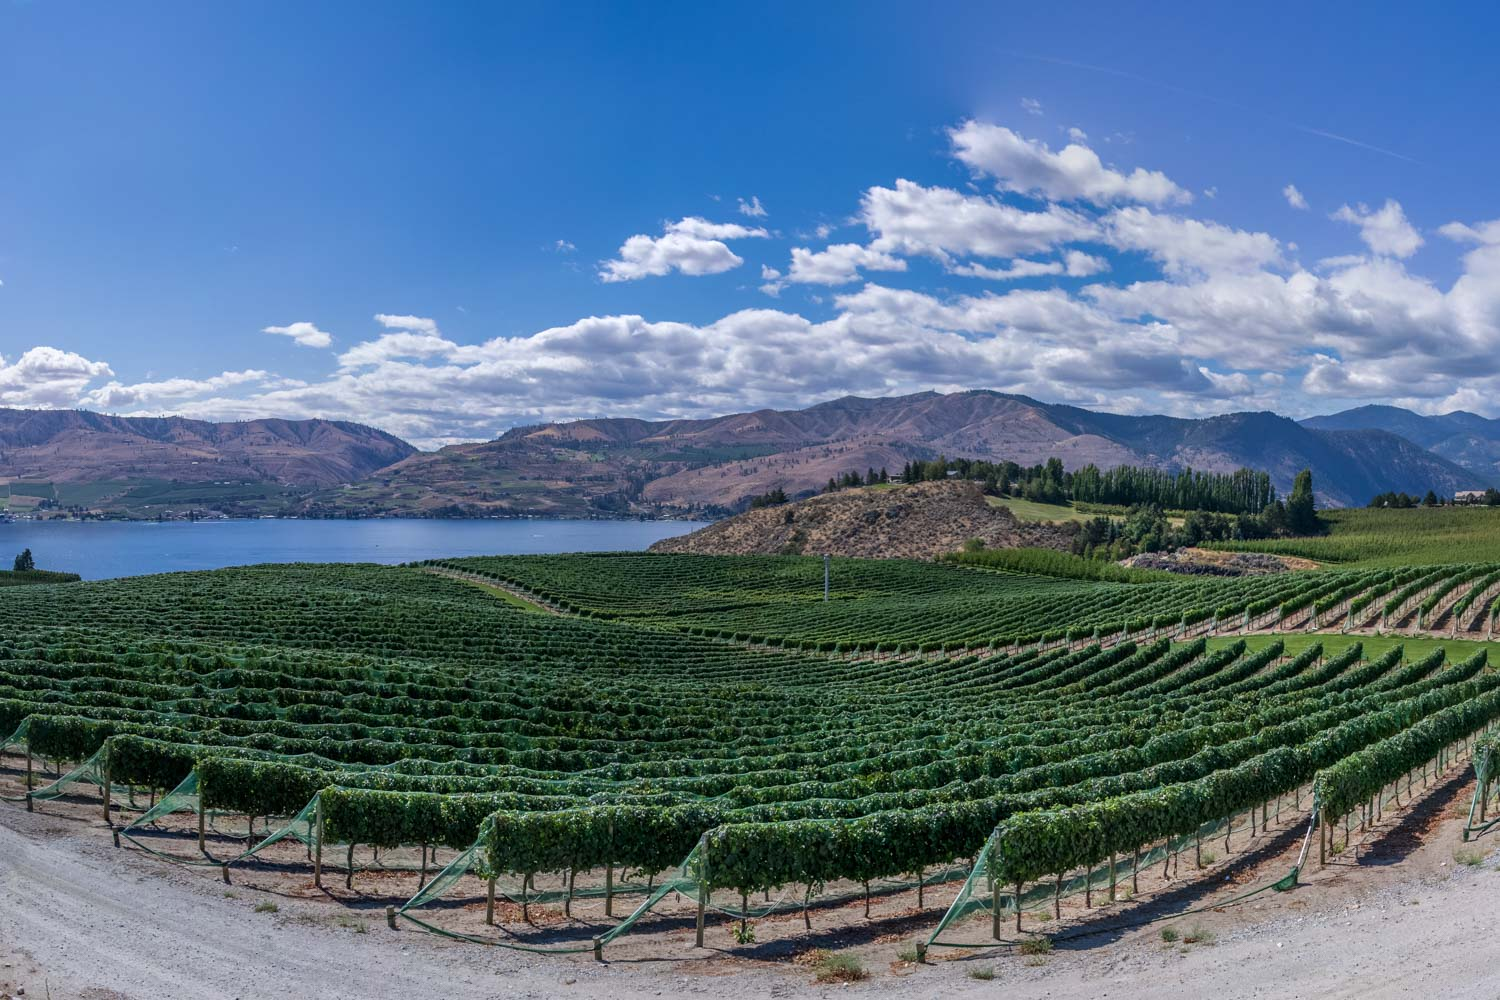 Winery beside lake and mountains.